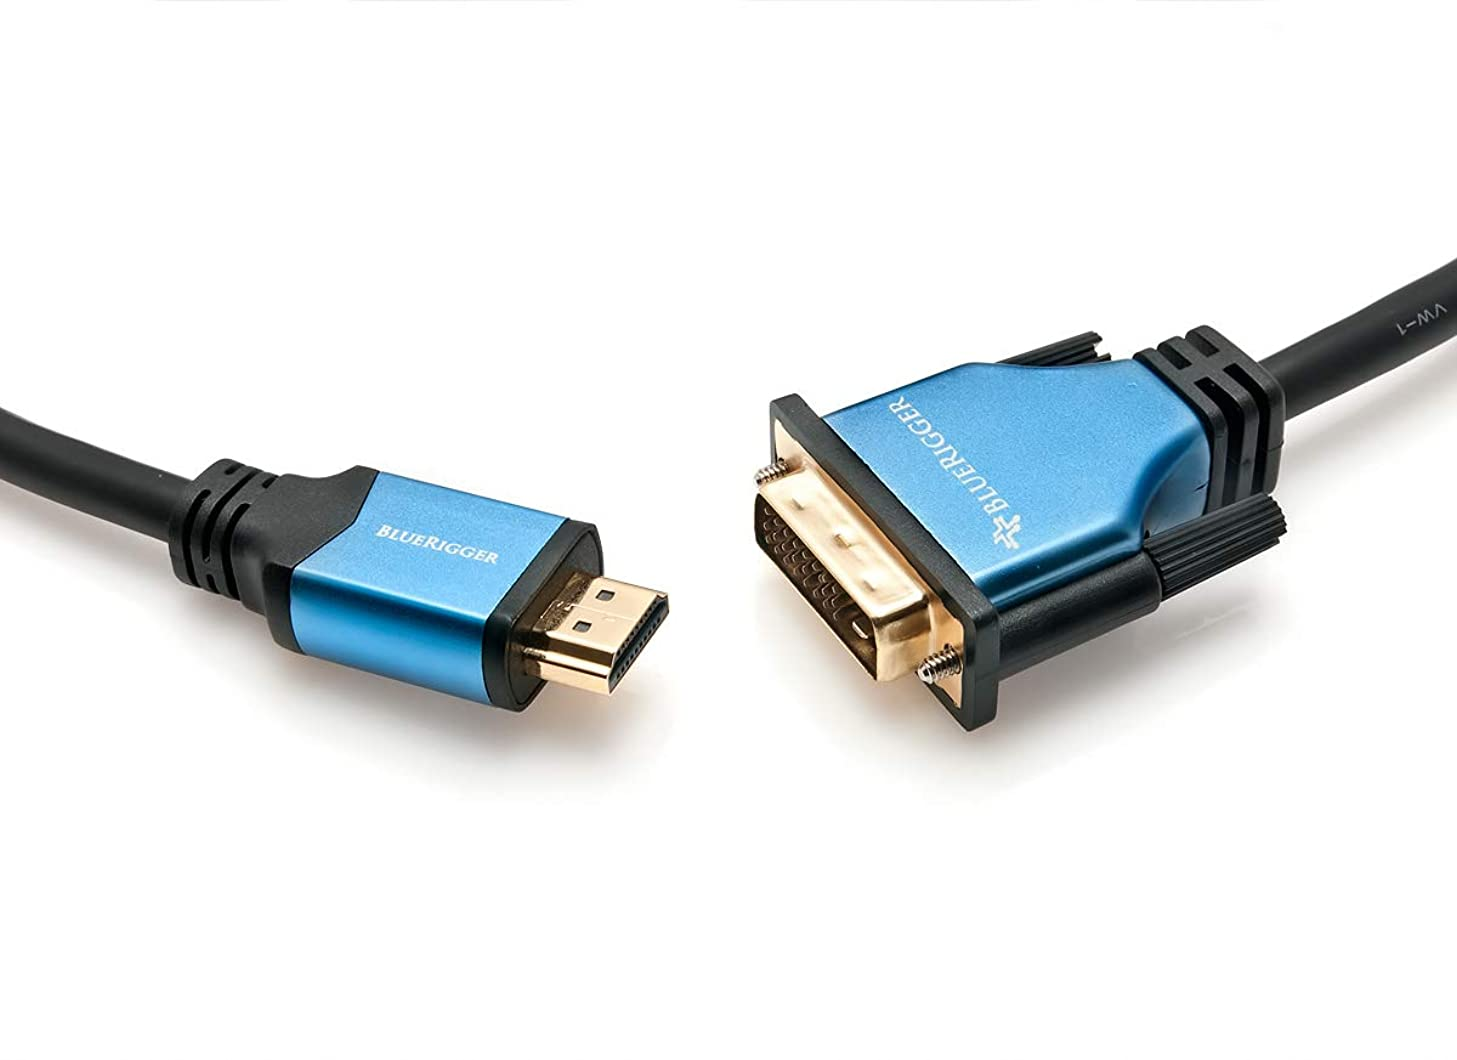 BlueRigger High Speed HDMI to DVI Adapter Cable (25 Feet)